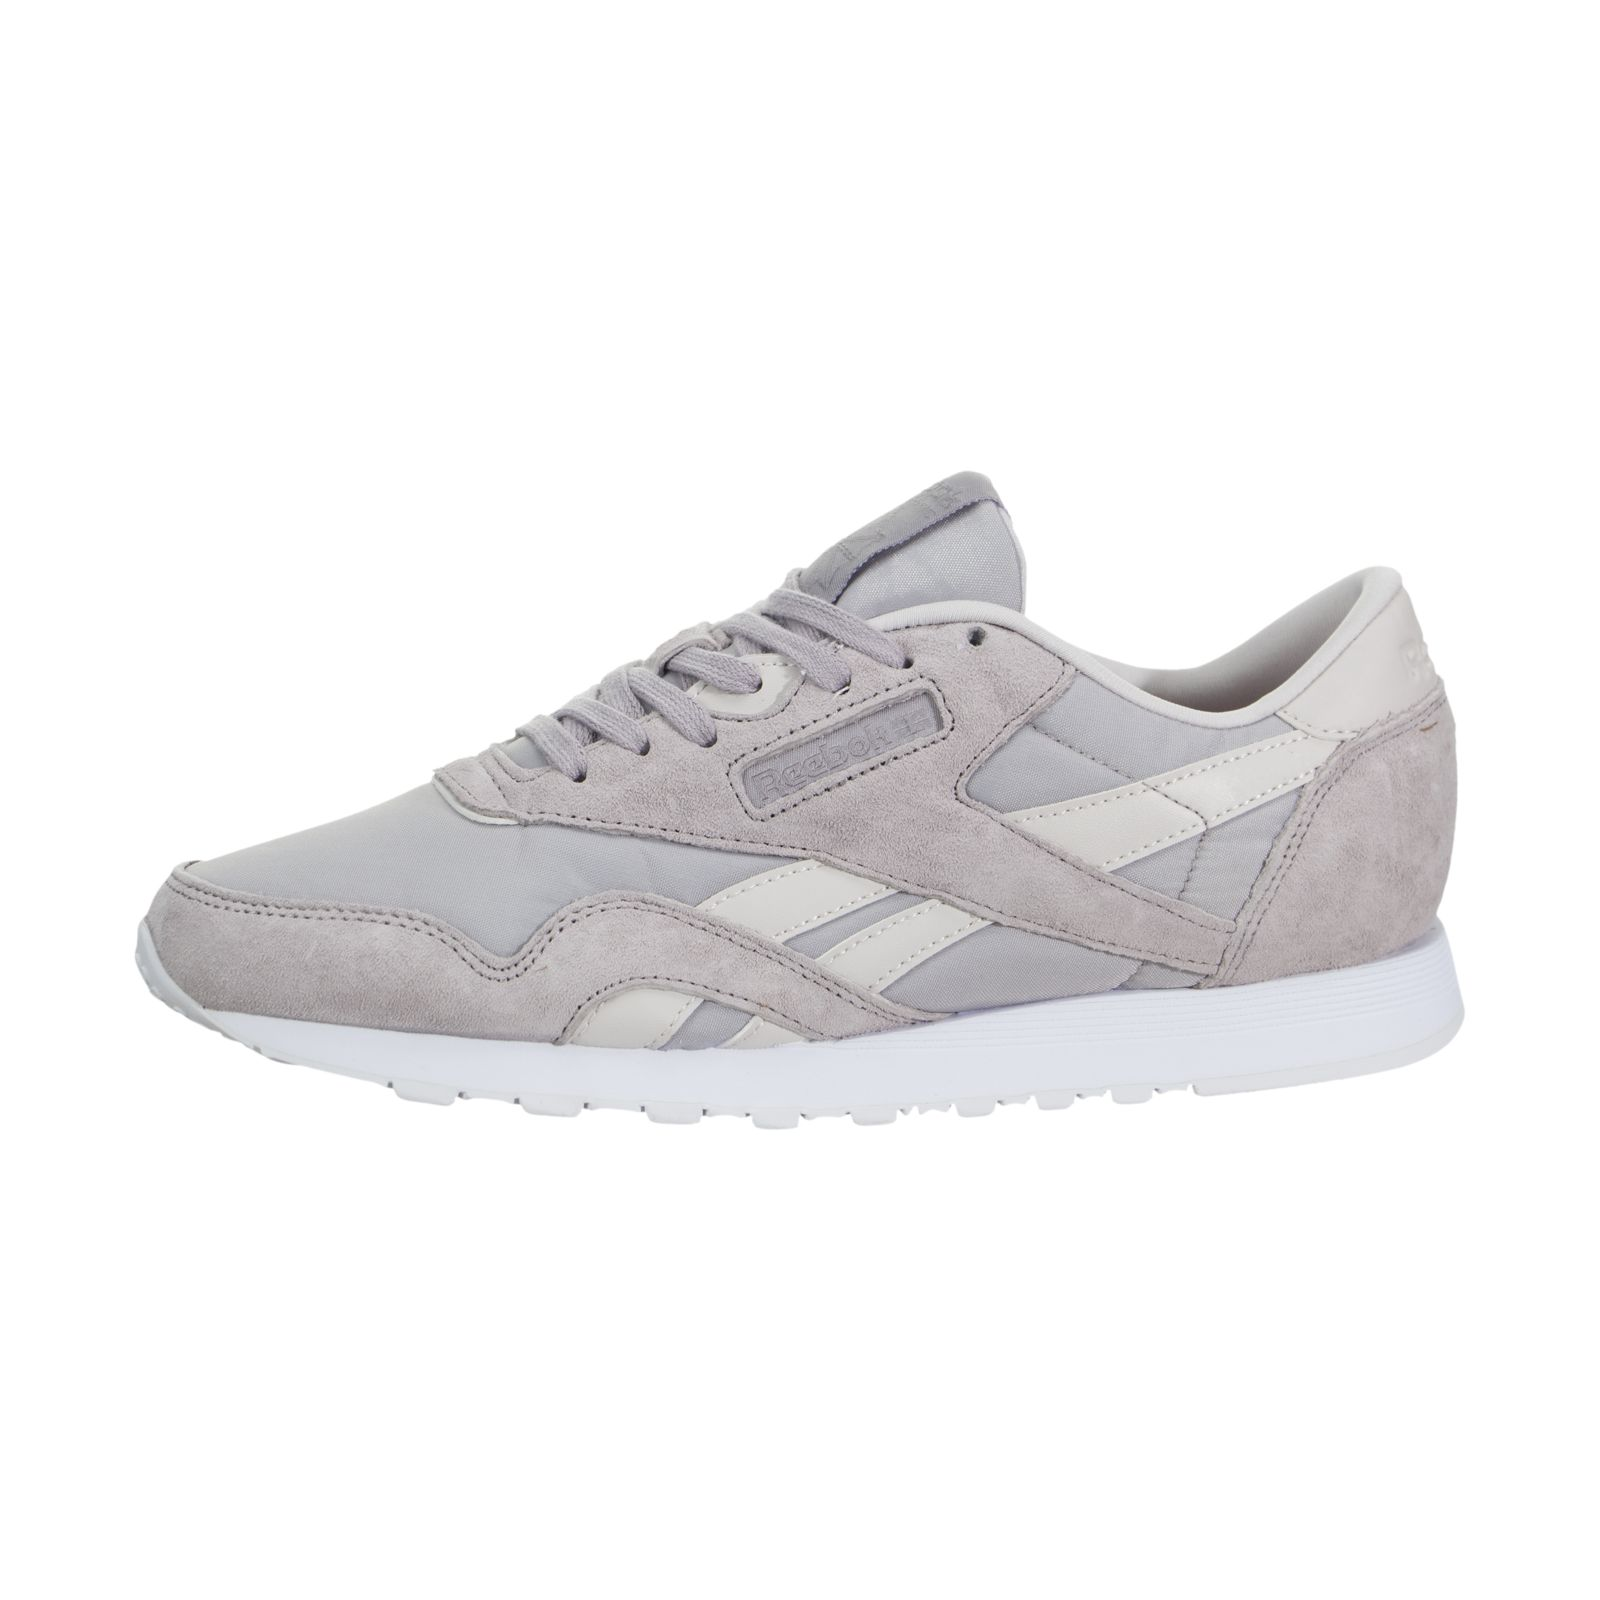 Image is loading Reebok-Classic-Nylon-x-FACE-bd2682 bca0de1b9